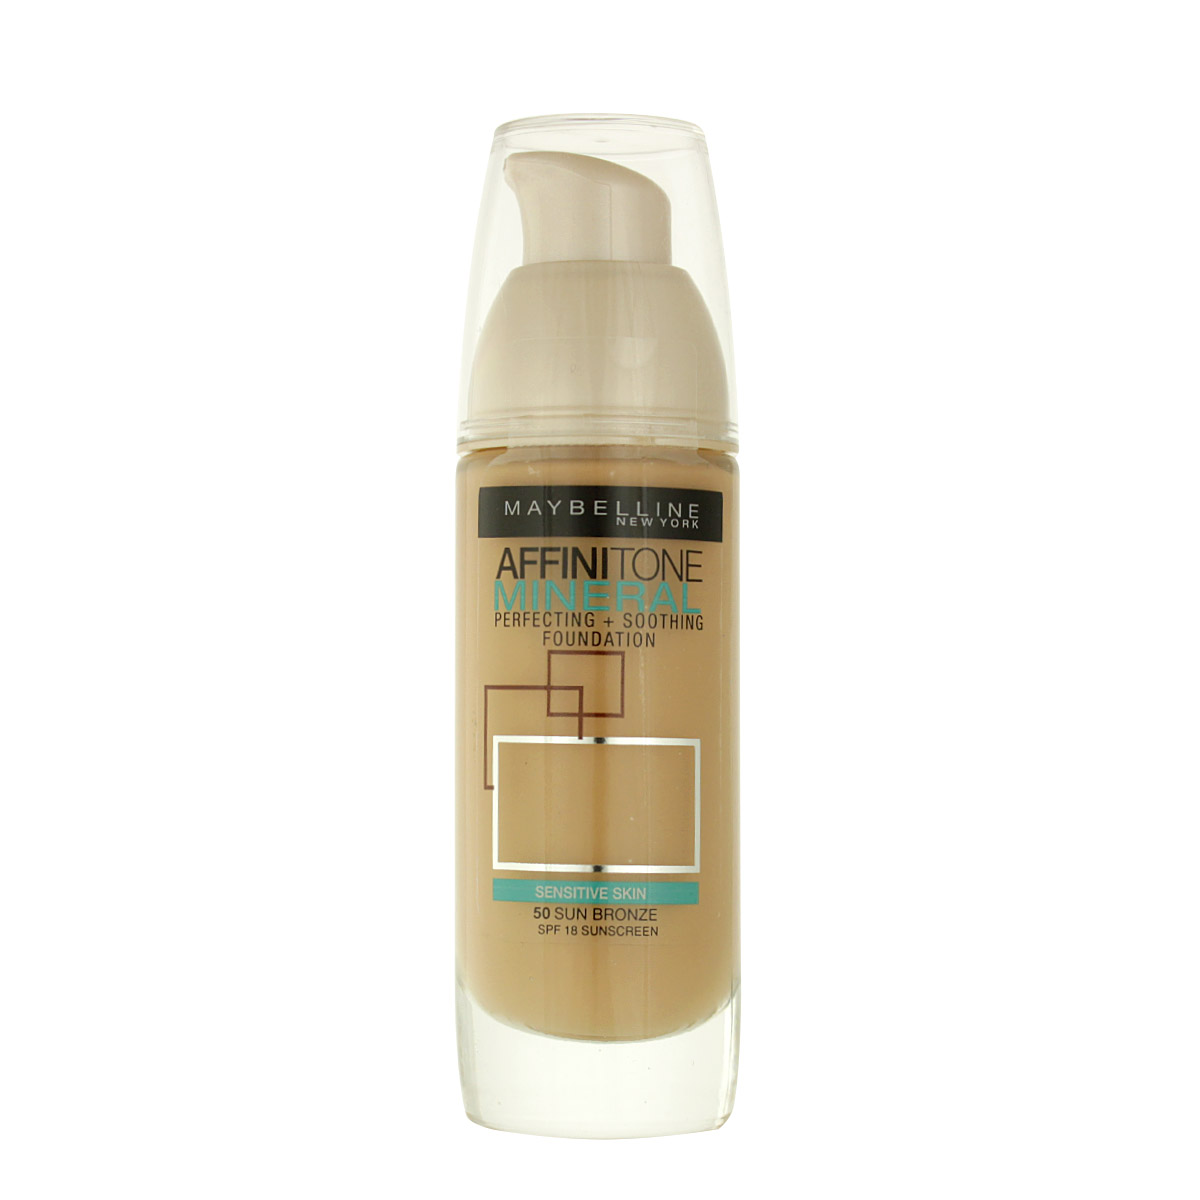 Maybelline Affinitone Mineral Perfecting + Soothing Foundation SPF 18 (50 Sun Bronze) 30 ml